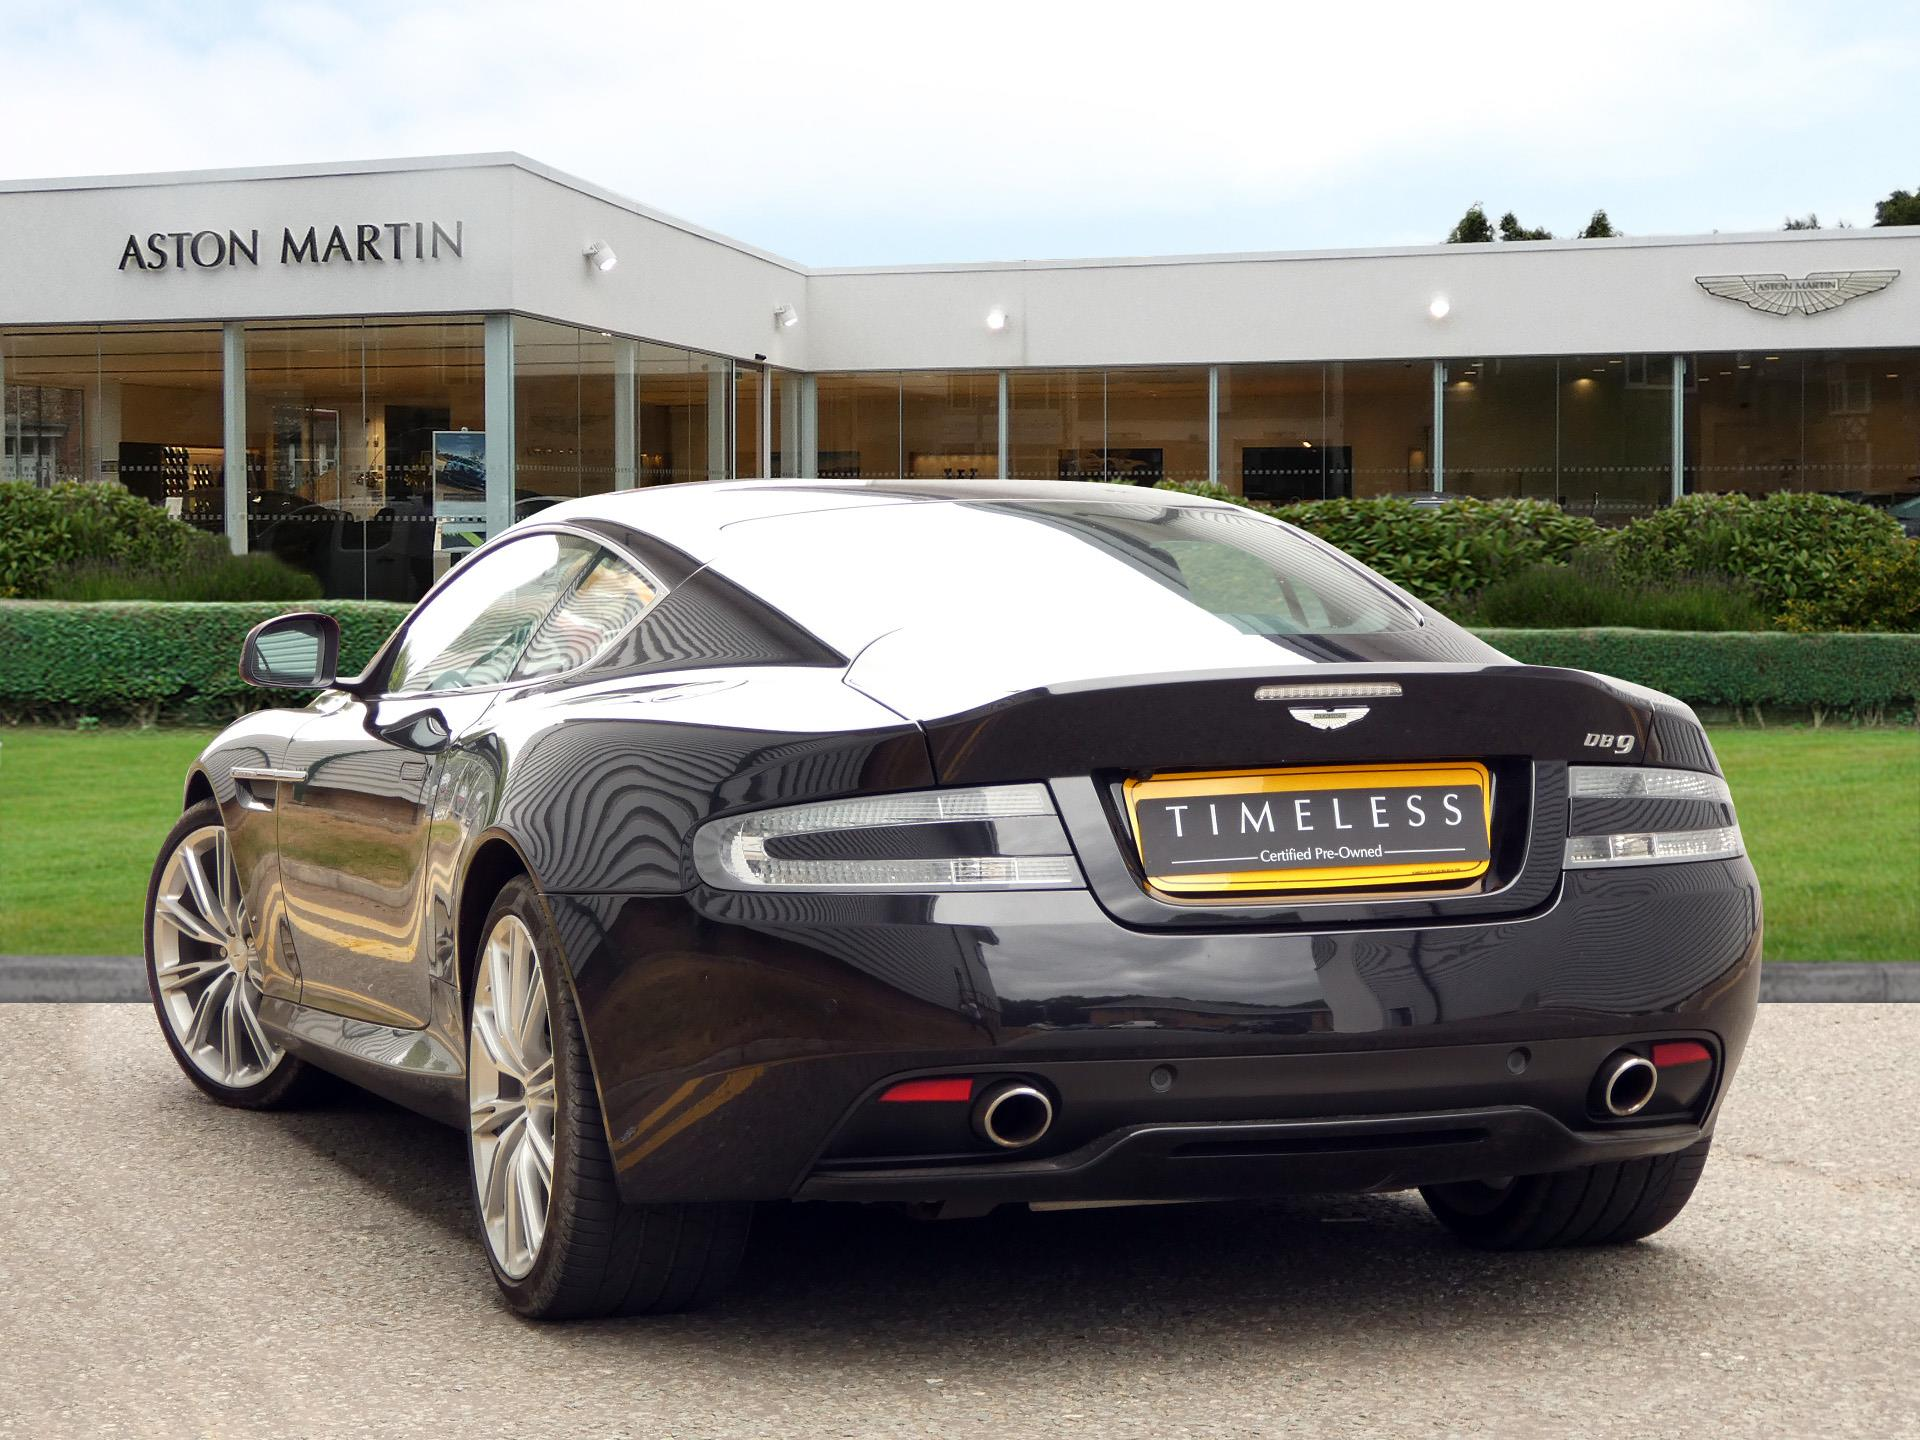 Aston Martin Lagonda PreOwned Used Aston Martins Car Details - Aston martin db9 pre owned